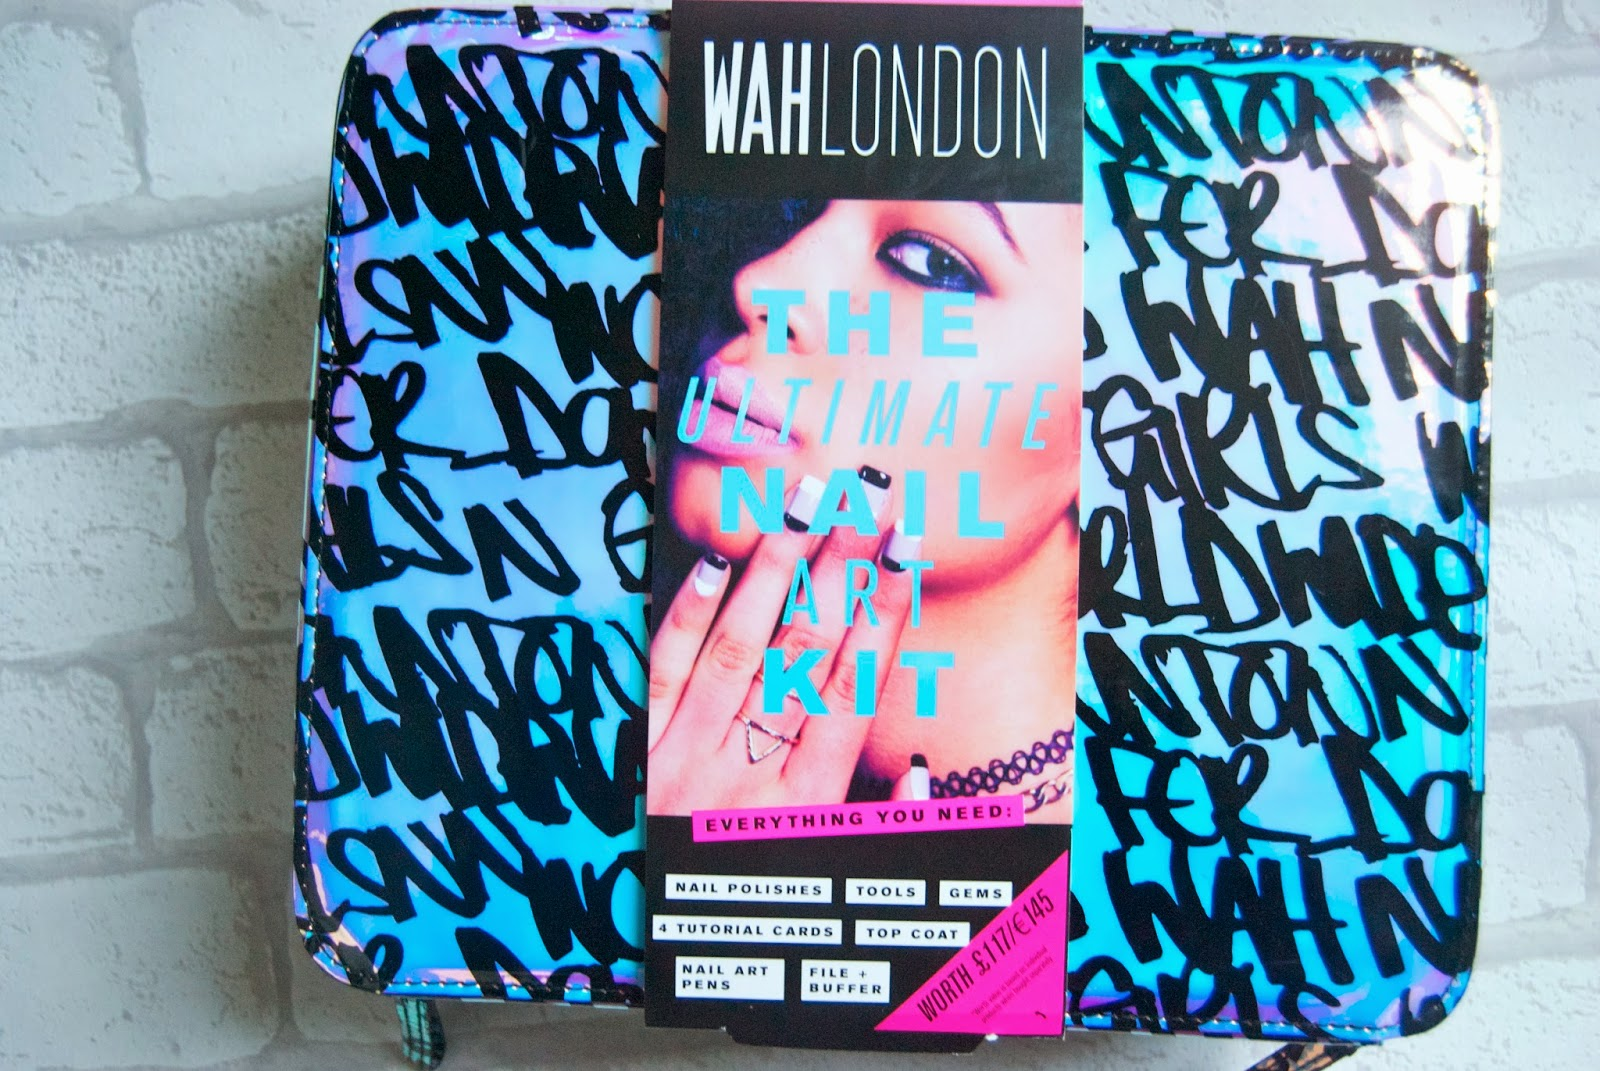 Review: WAH London The Ultimate Nail Art Kit